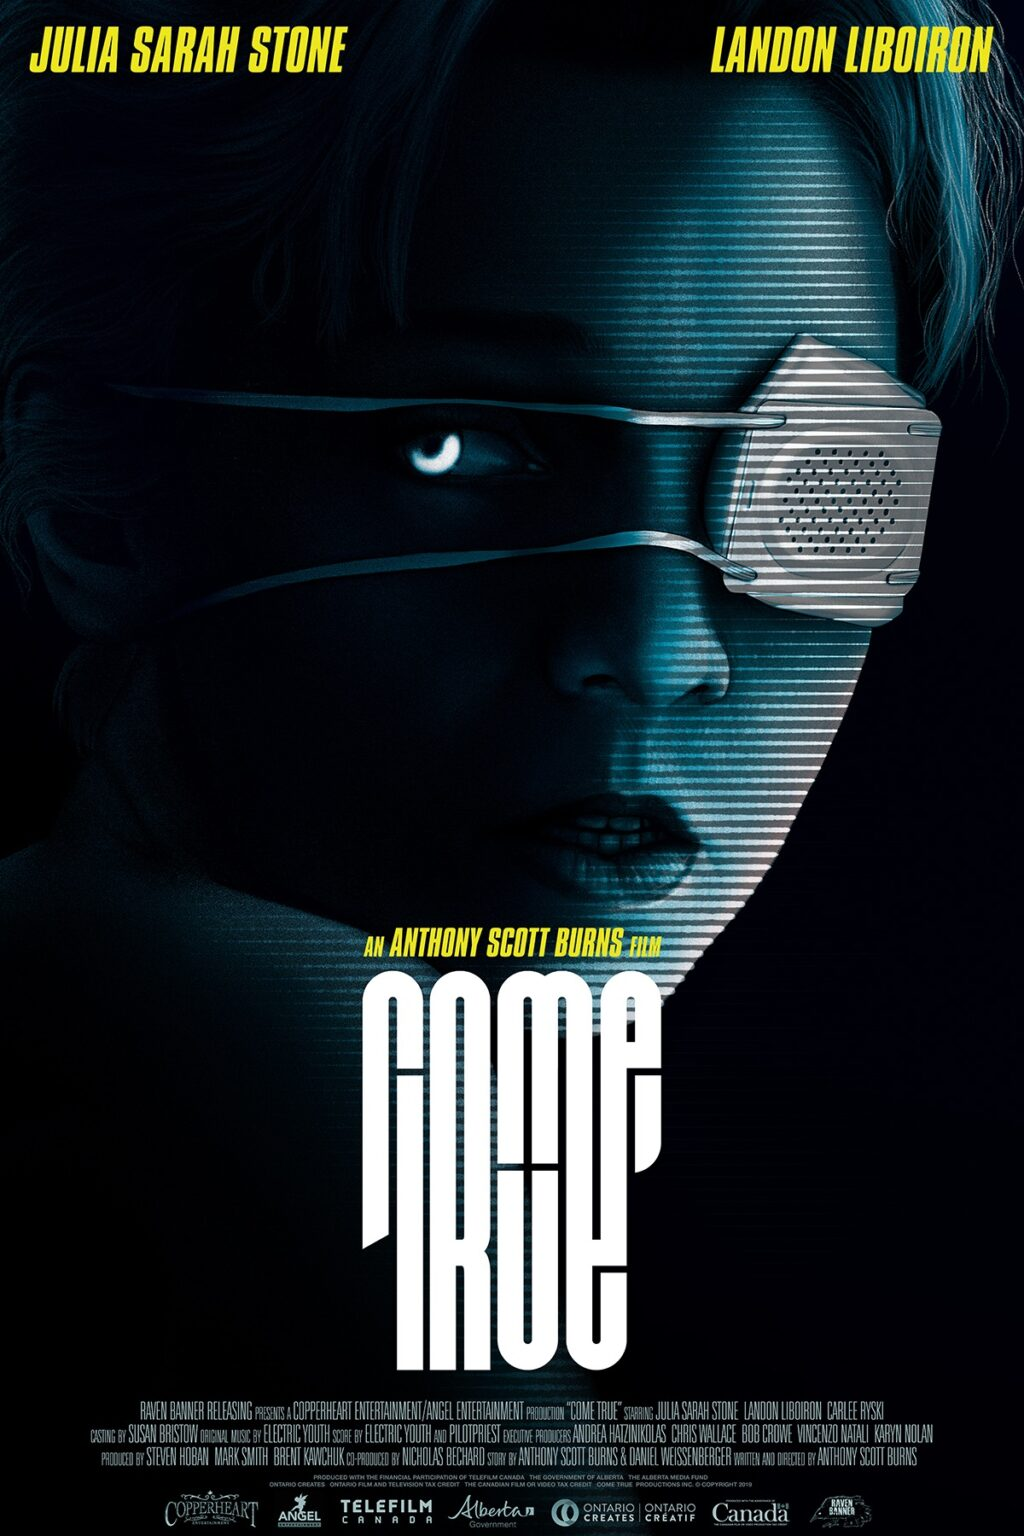 Come True Posters 1024x1536 - First Look: OUR HOUSE Director's New Sci-Fi Horror Flick COME TRUE